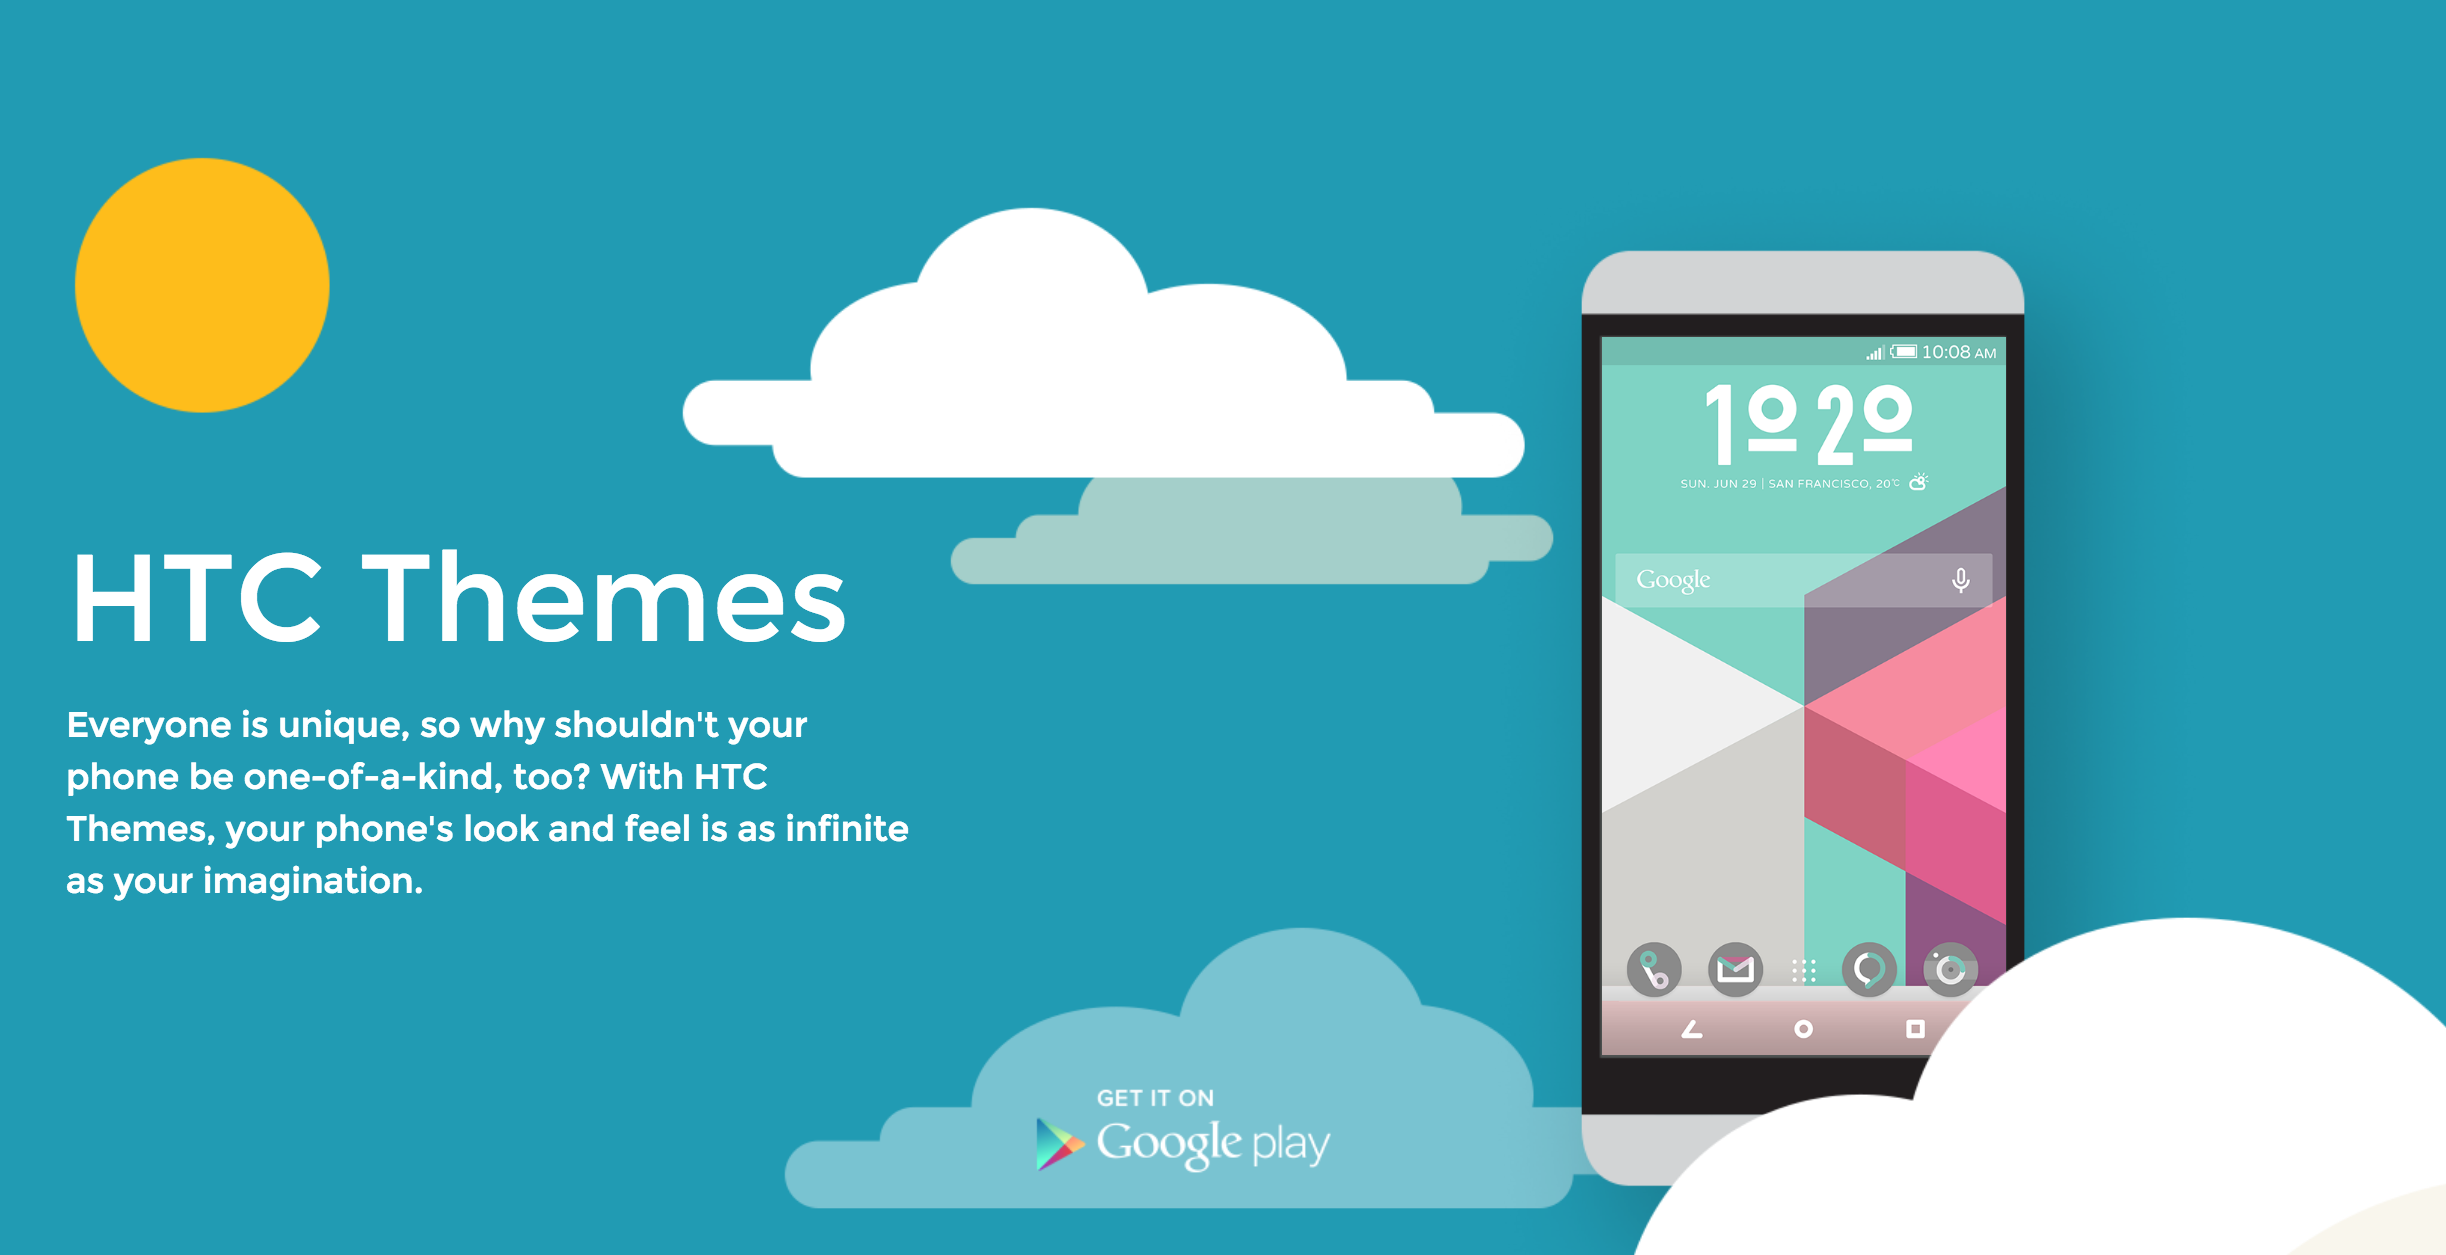 Google themes create your own - Htc Themes Landing